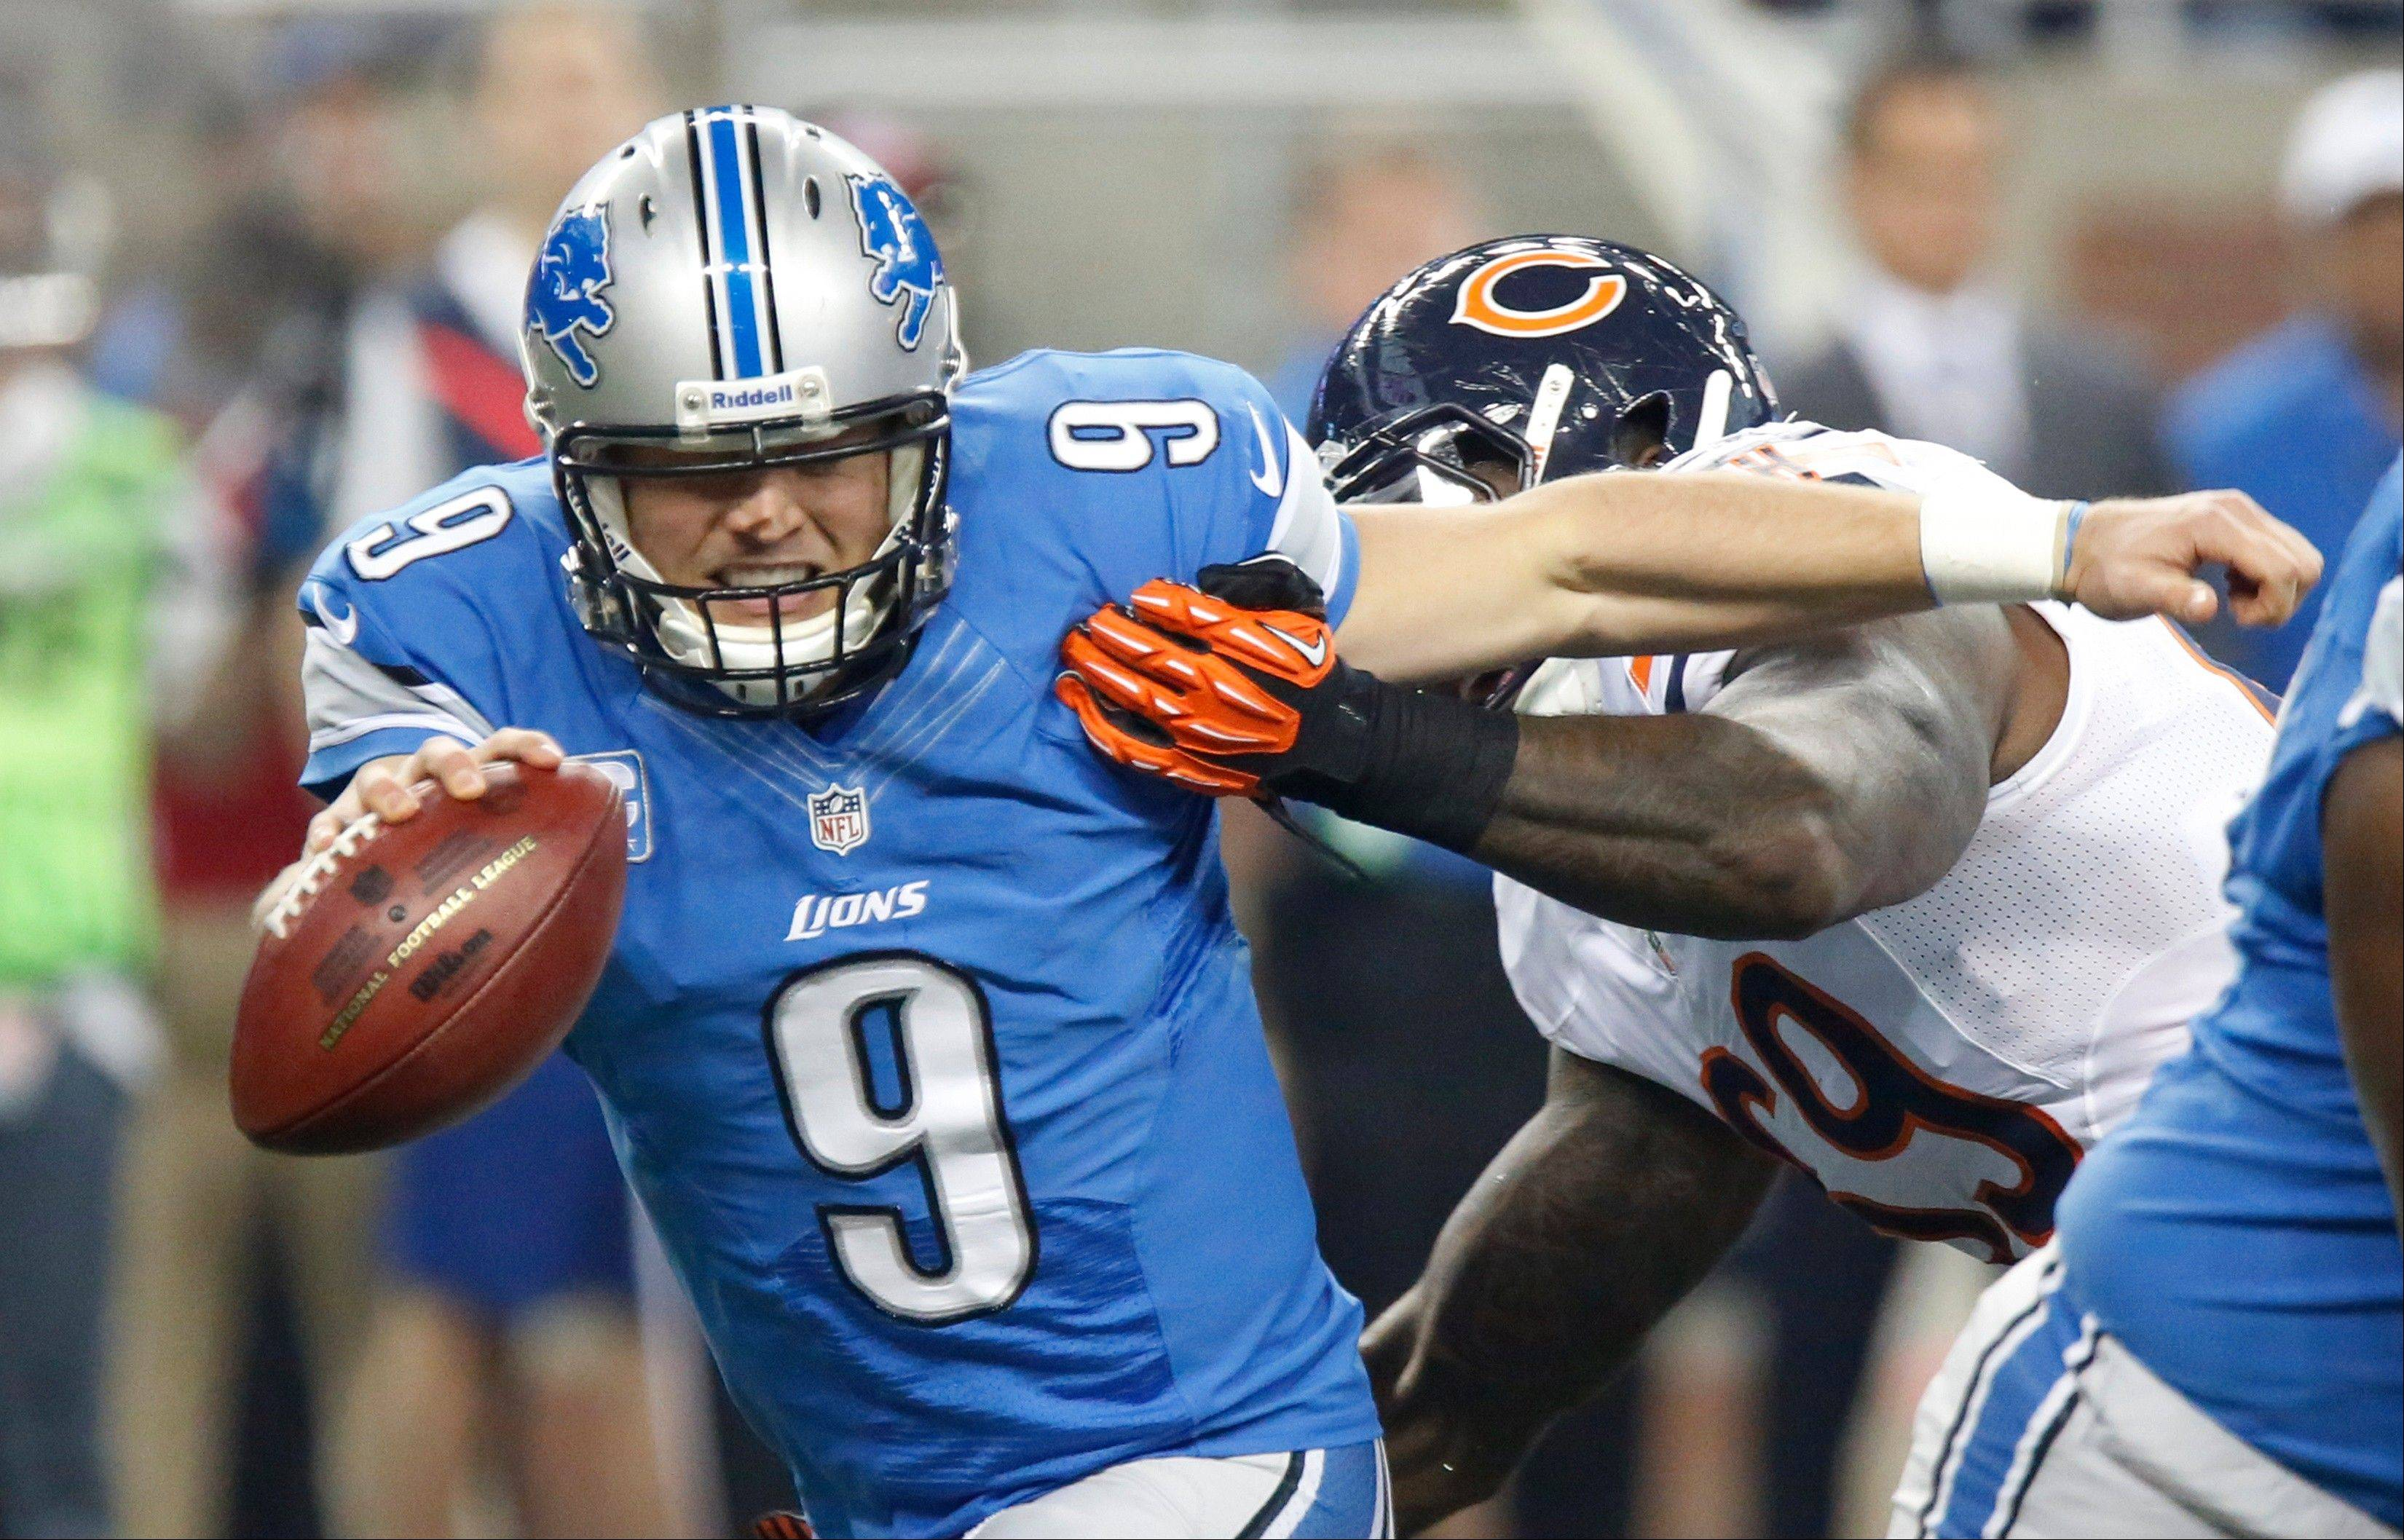 Detroit Lions quarterback Matthew Stafford (9) pulls away from Chicago Bears defensive tackle Henry Melton (69) during the first quarter.